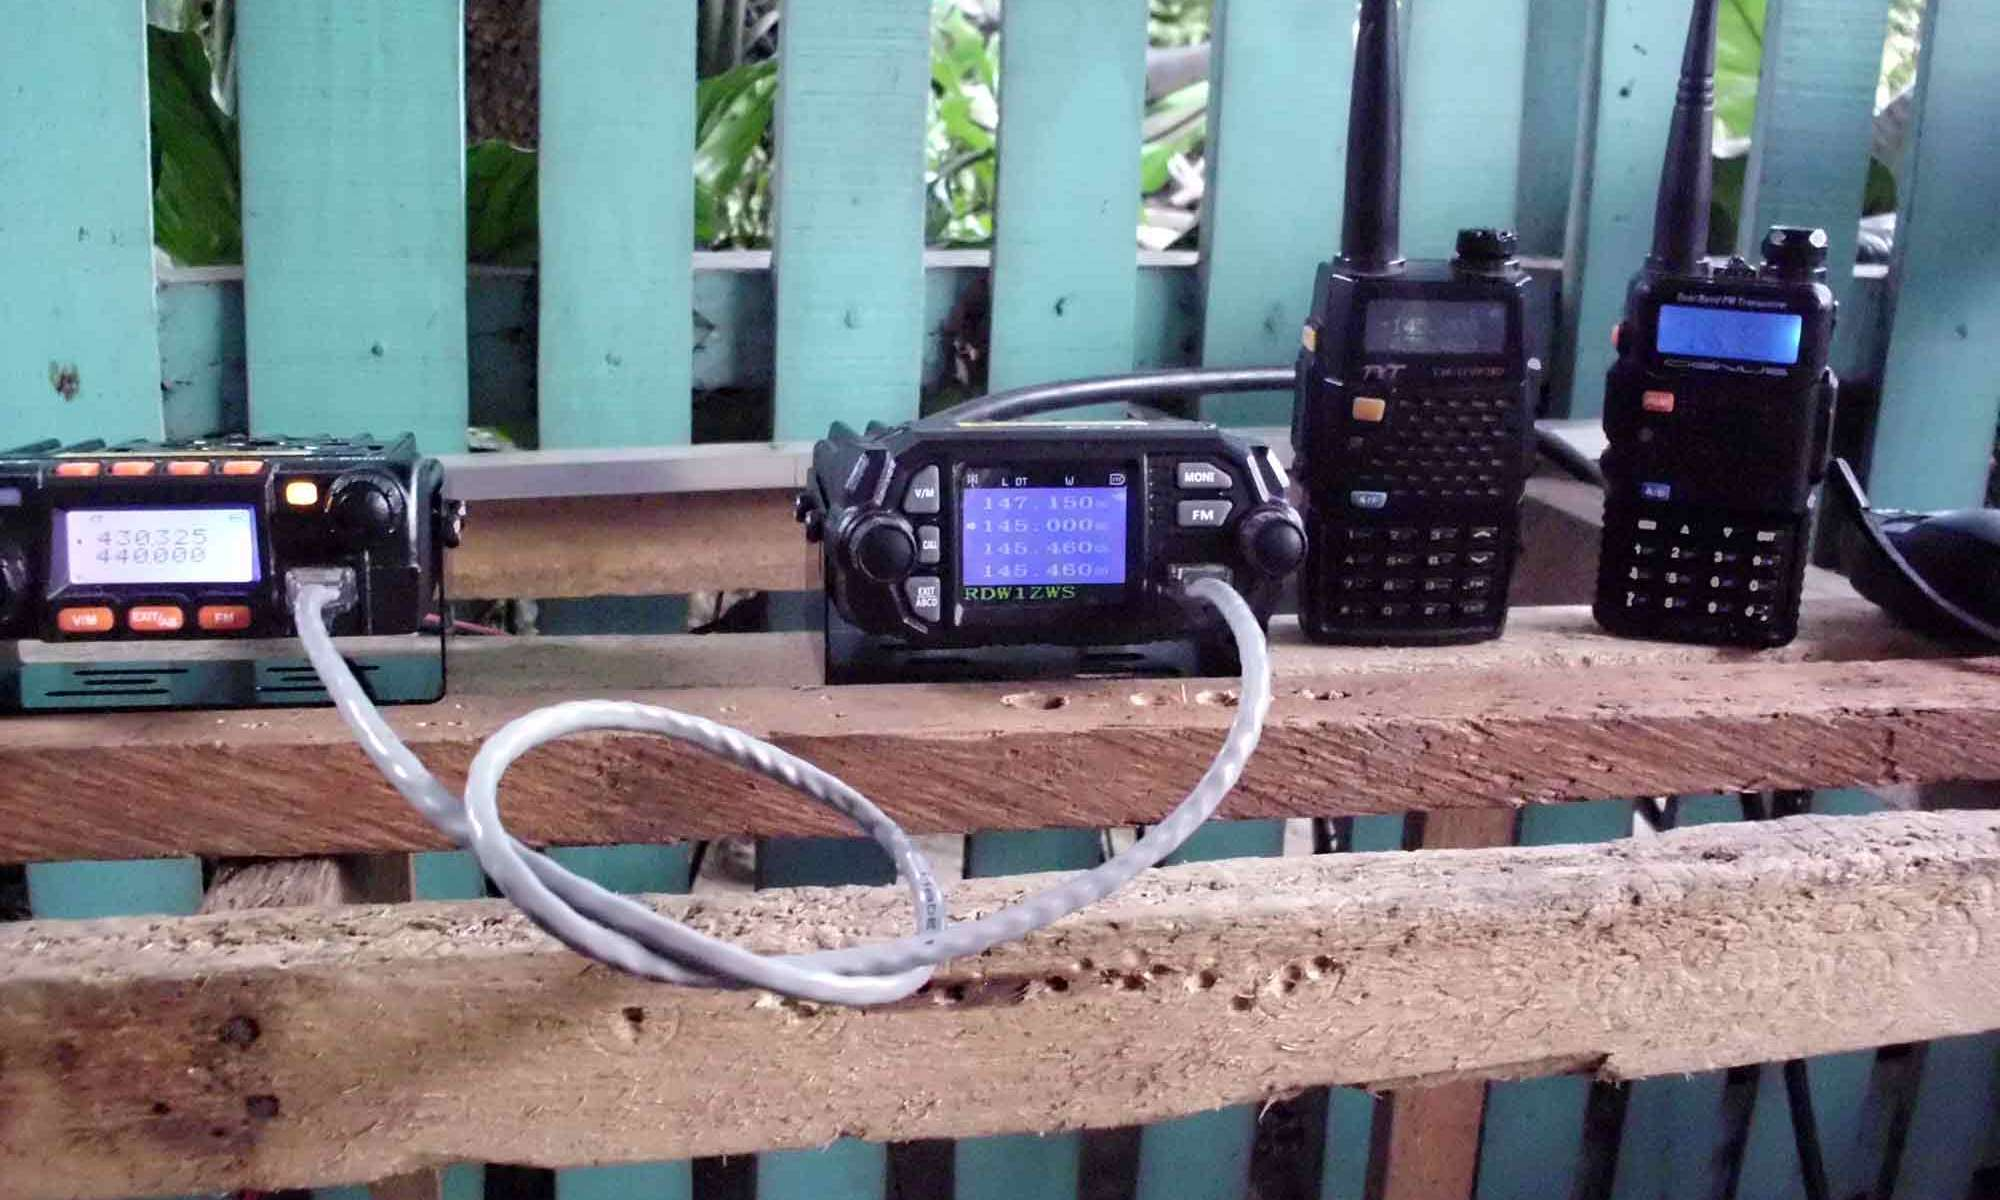 QYT KT8900 and KT8900D Repeater System